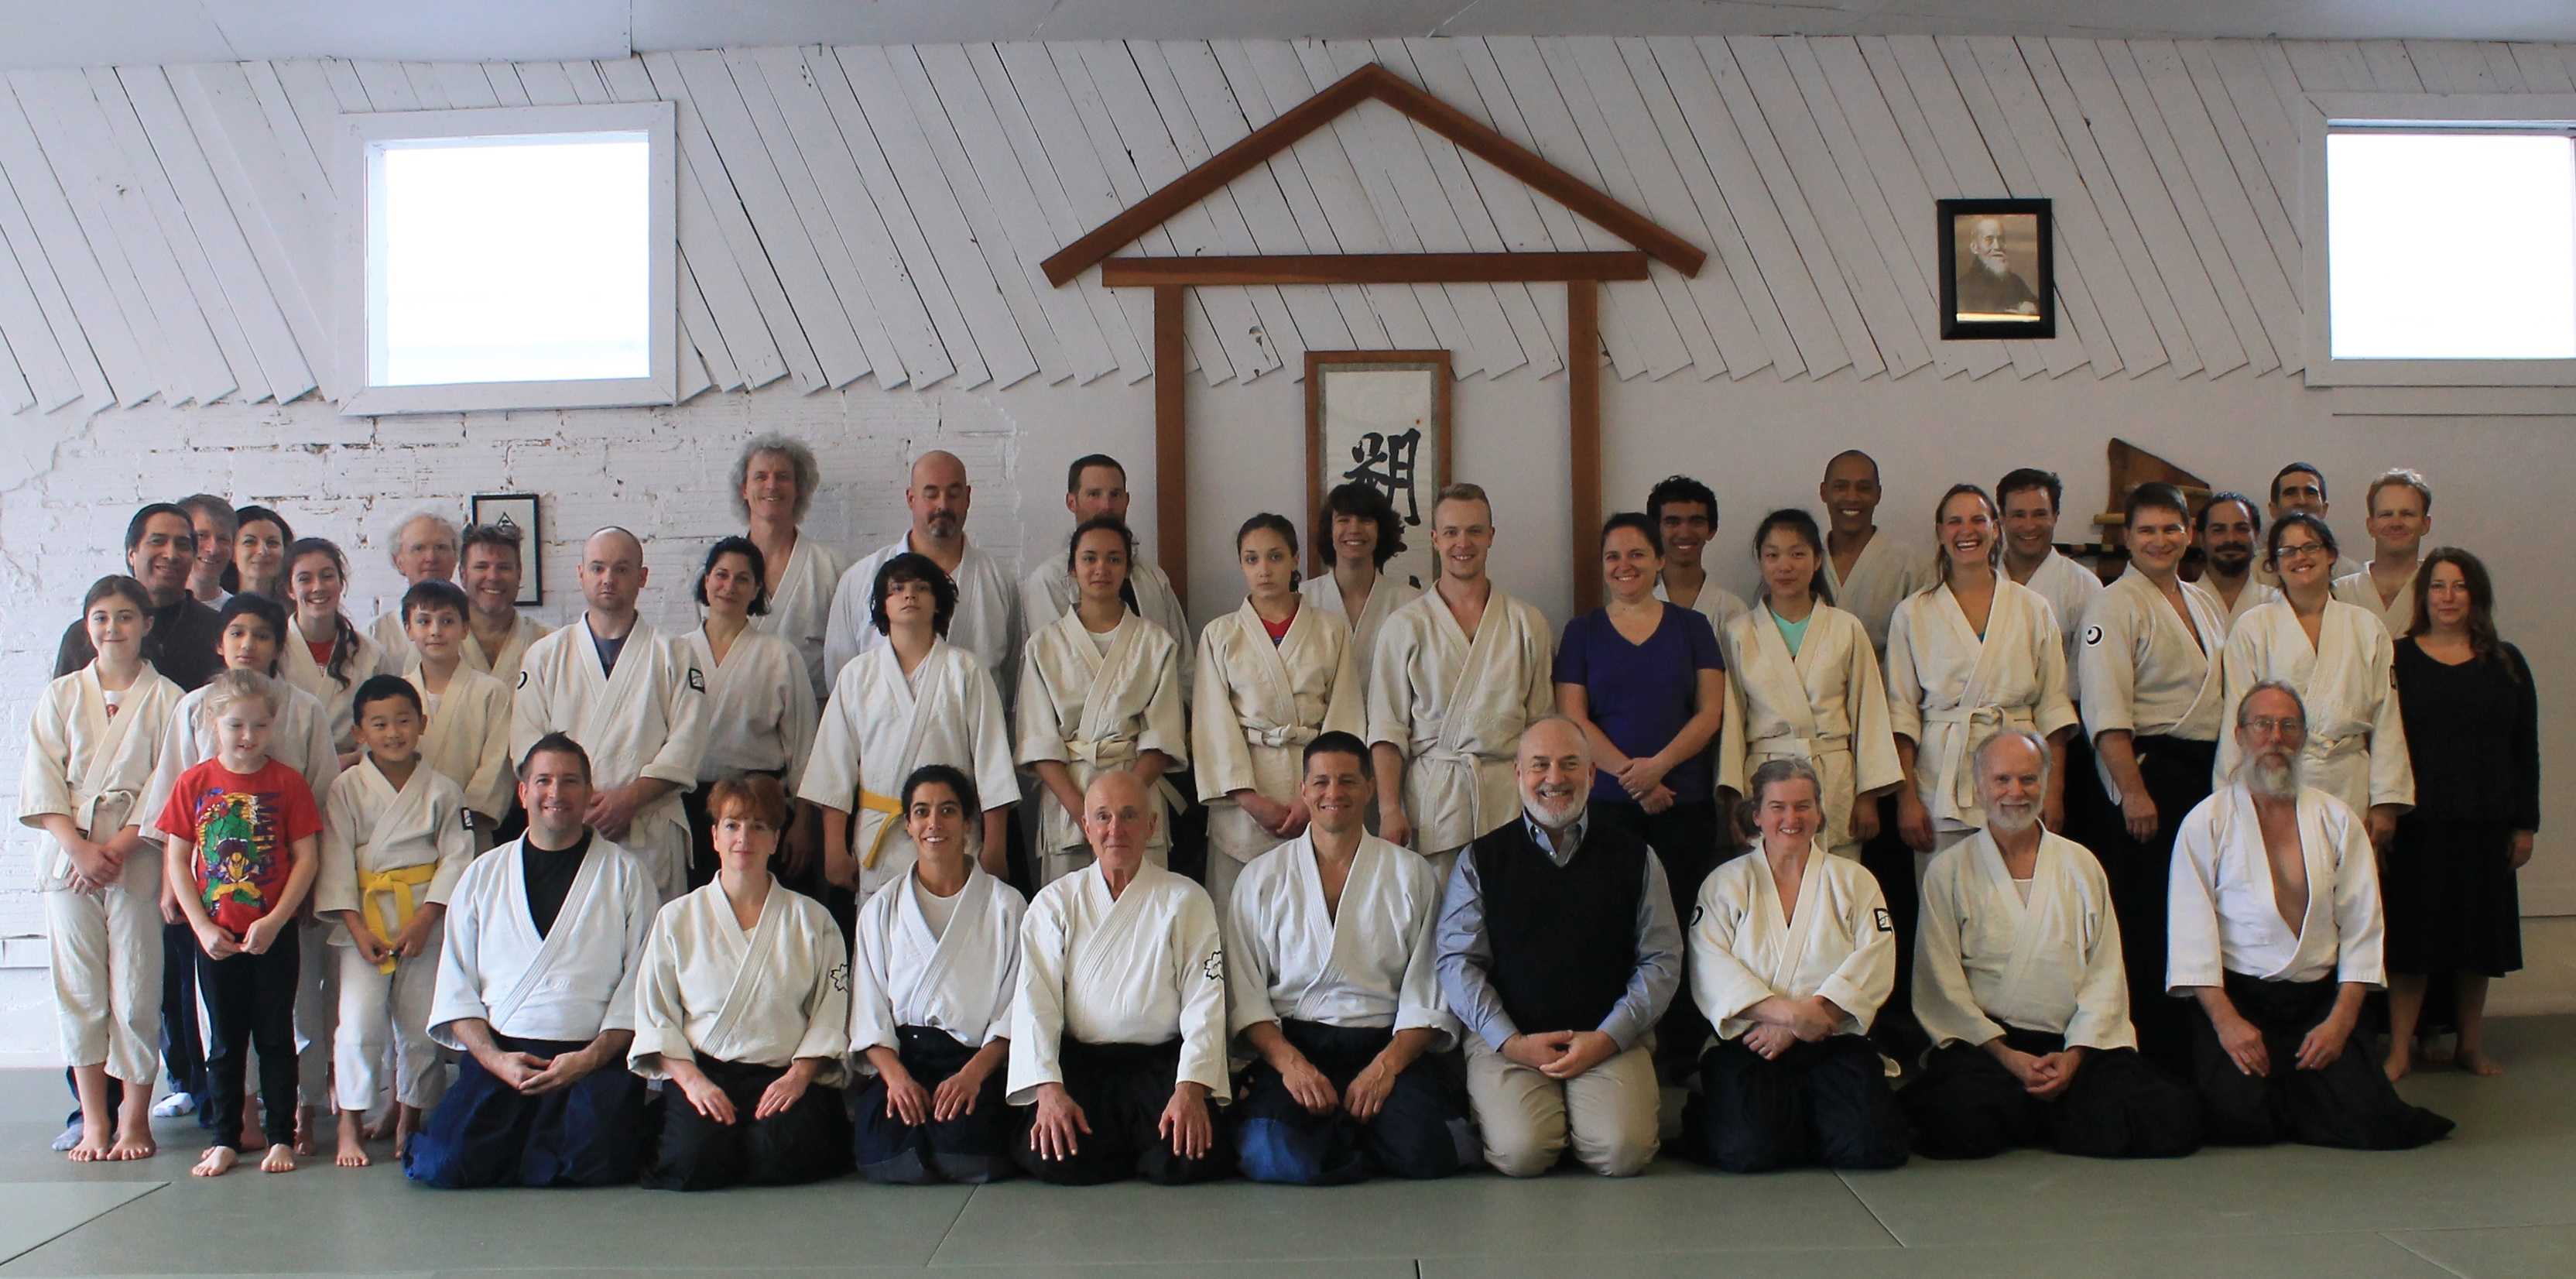 Group photo from Apodaca Sensei seminar at Multnomah Aikikai, October 2015.